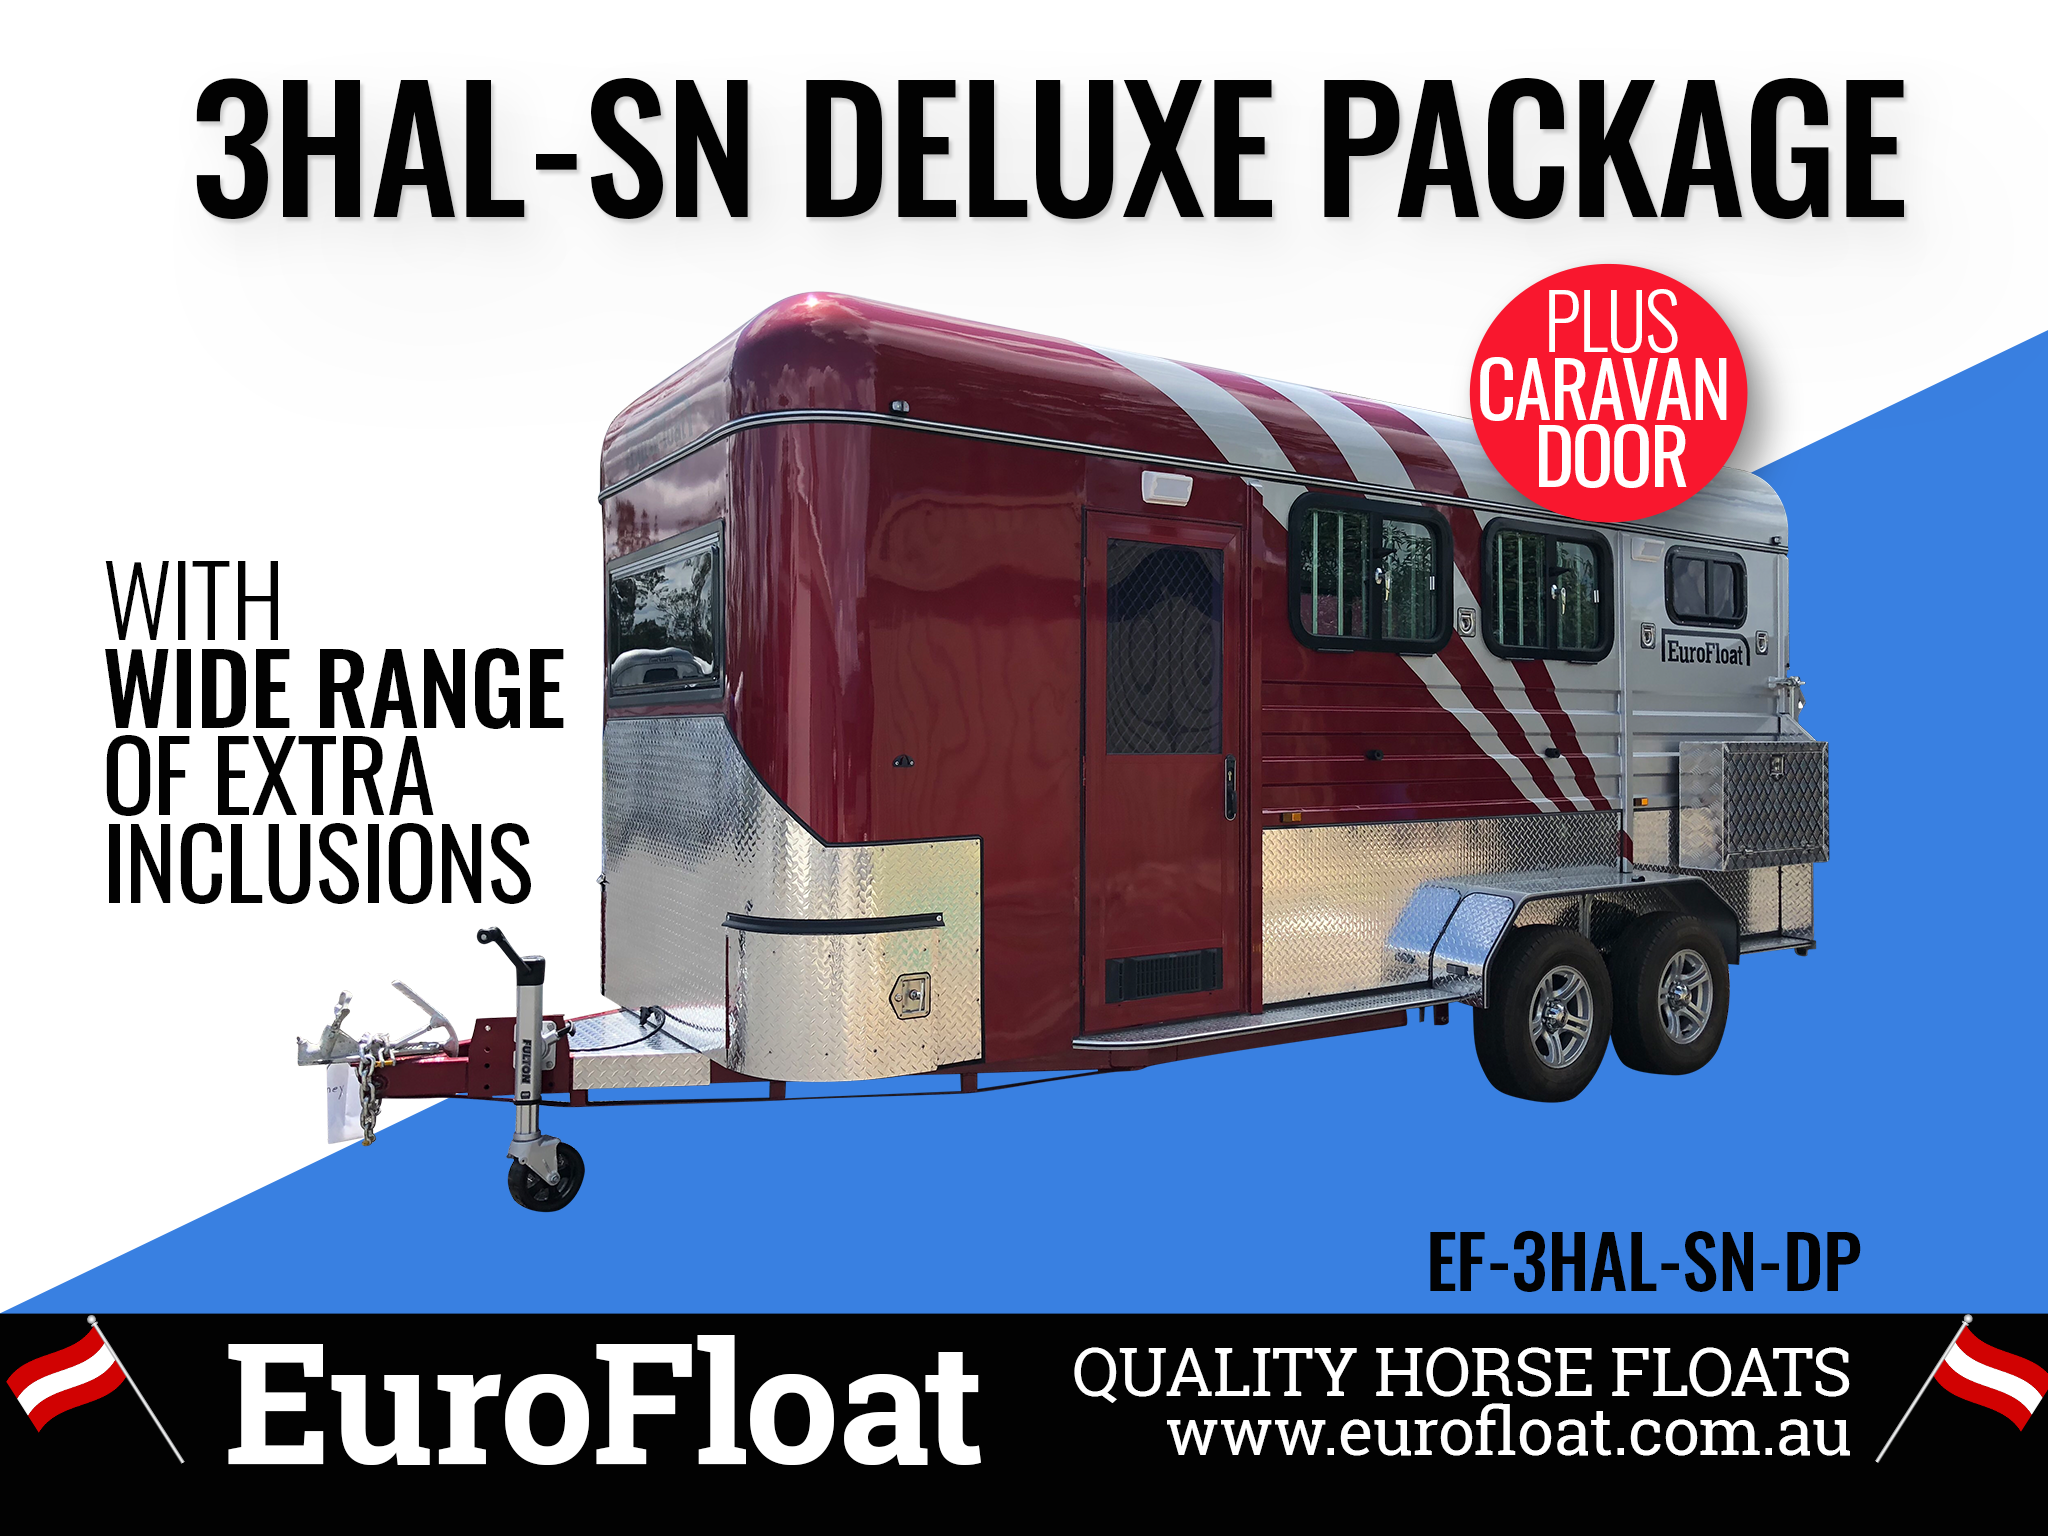 3HAL-SN Deluxe Package